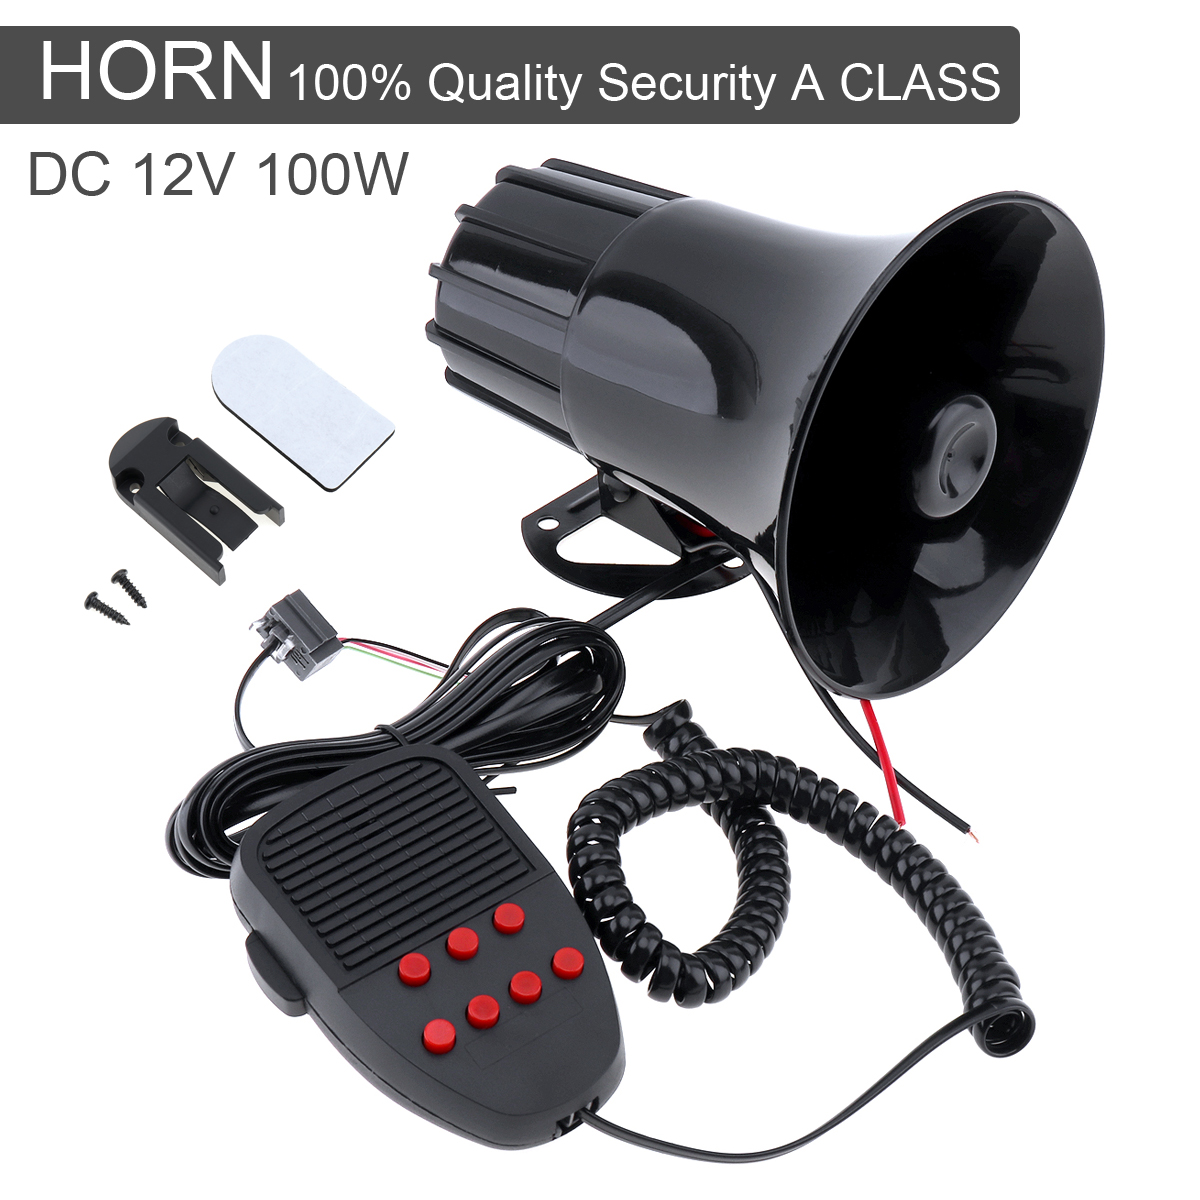 100W 12V 7 Sounds Car Truck Speaker Warning Alarm Police Fire Siren Horn Loud Sound 105db with MIC Microphone ...